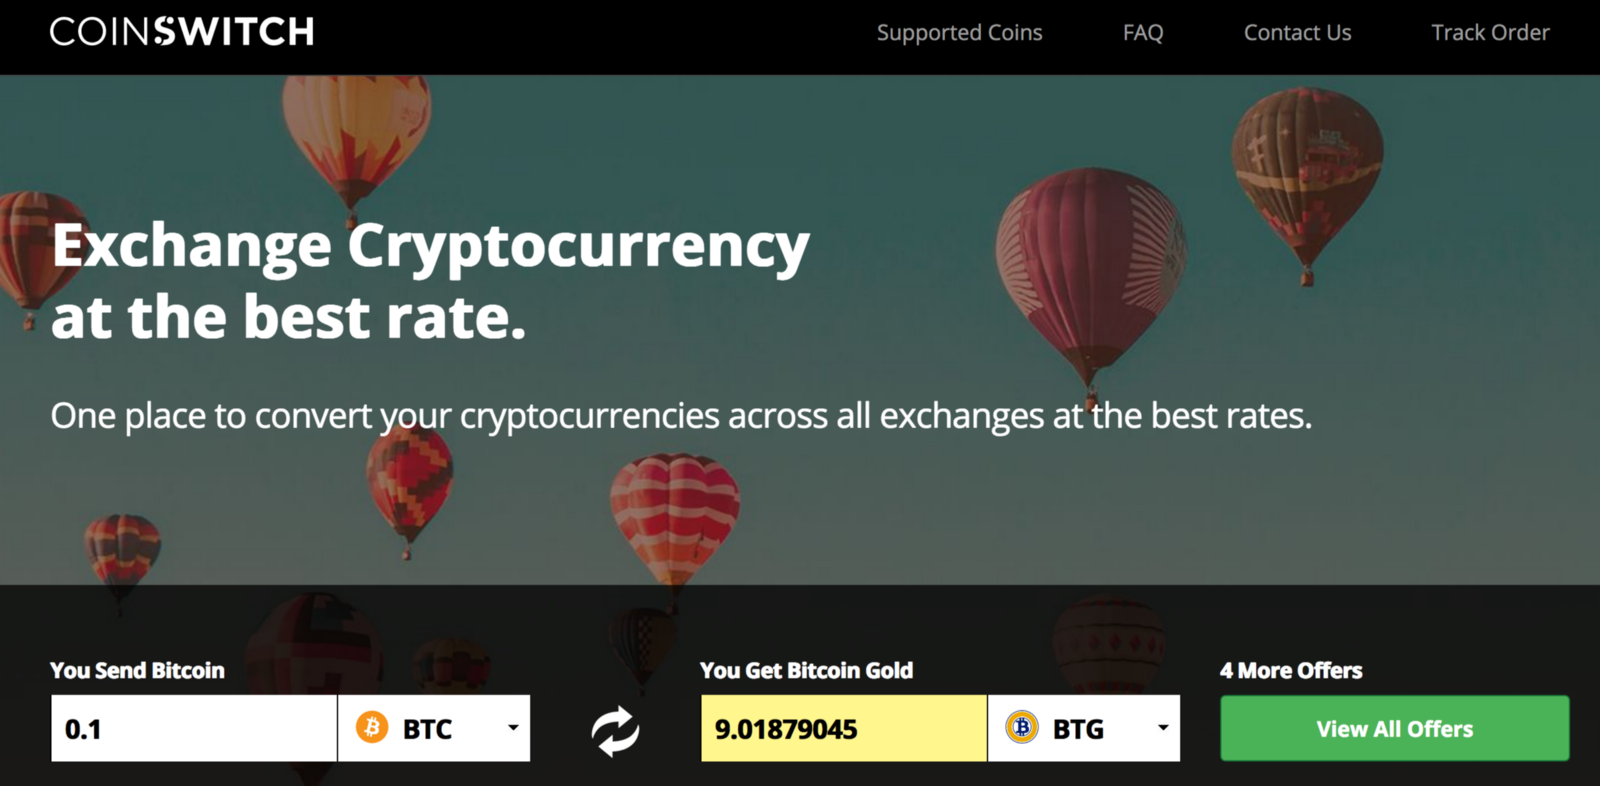 How to buy bitcoin gold btg on coinswitch coinswitch here you will see the list of all exchanges with bitcoin gold btg quantity they are offering choose the best exchange to convert bitcoin btc to bitcoin ccuart Images